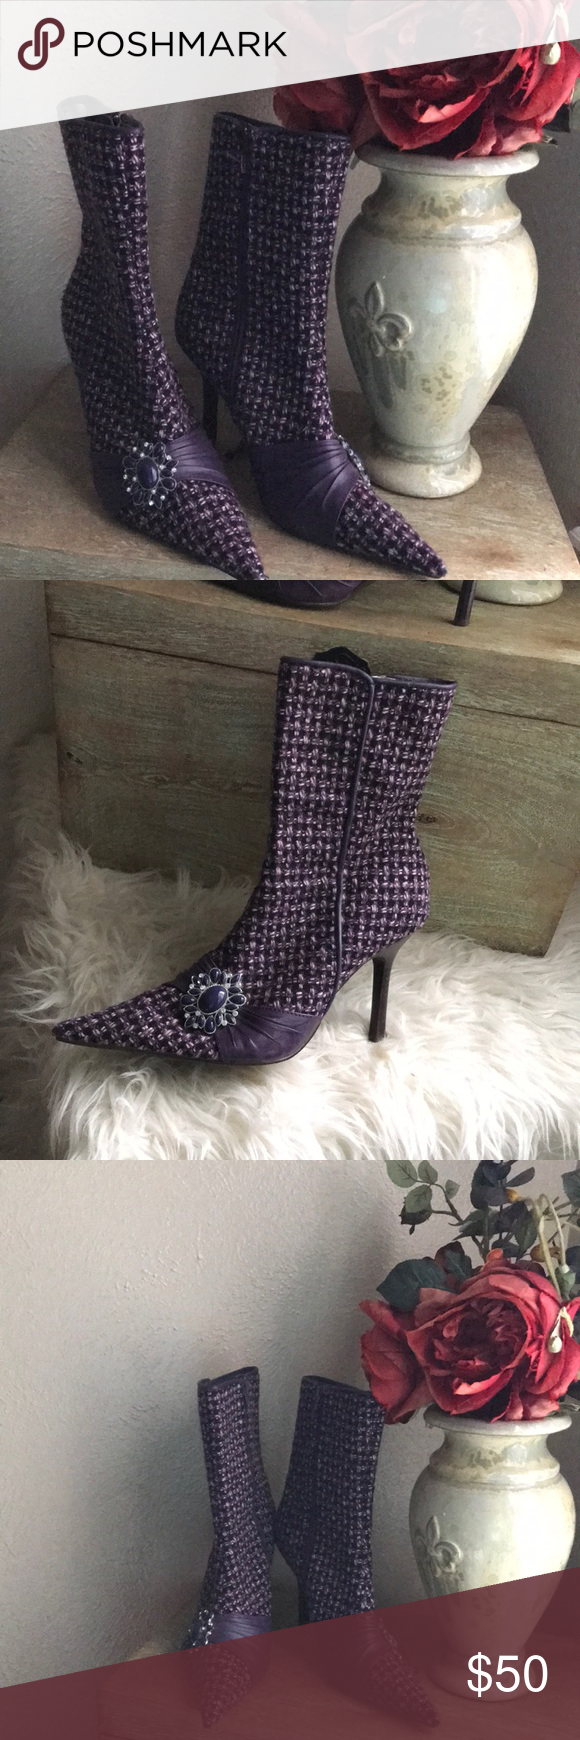 72df7260949 Steve Madden Dynasti Tweed Bejeweled Boots size 6 Bejeweled Embellished  Rhinestone at the side Side zipper